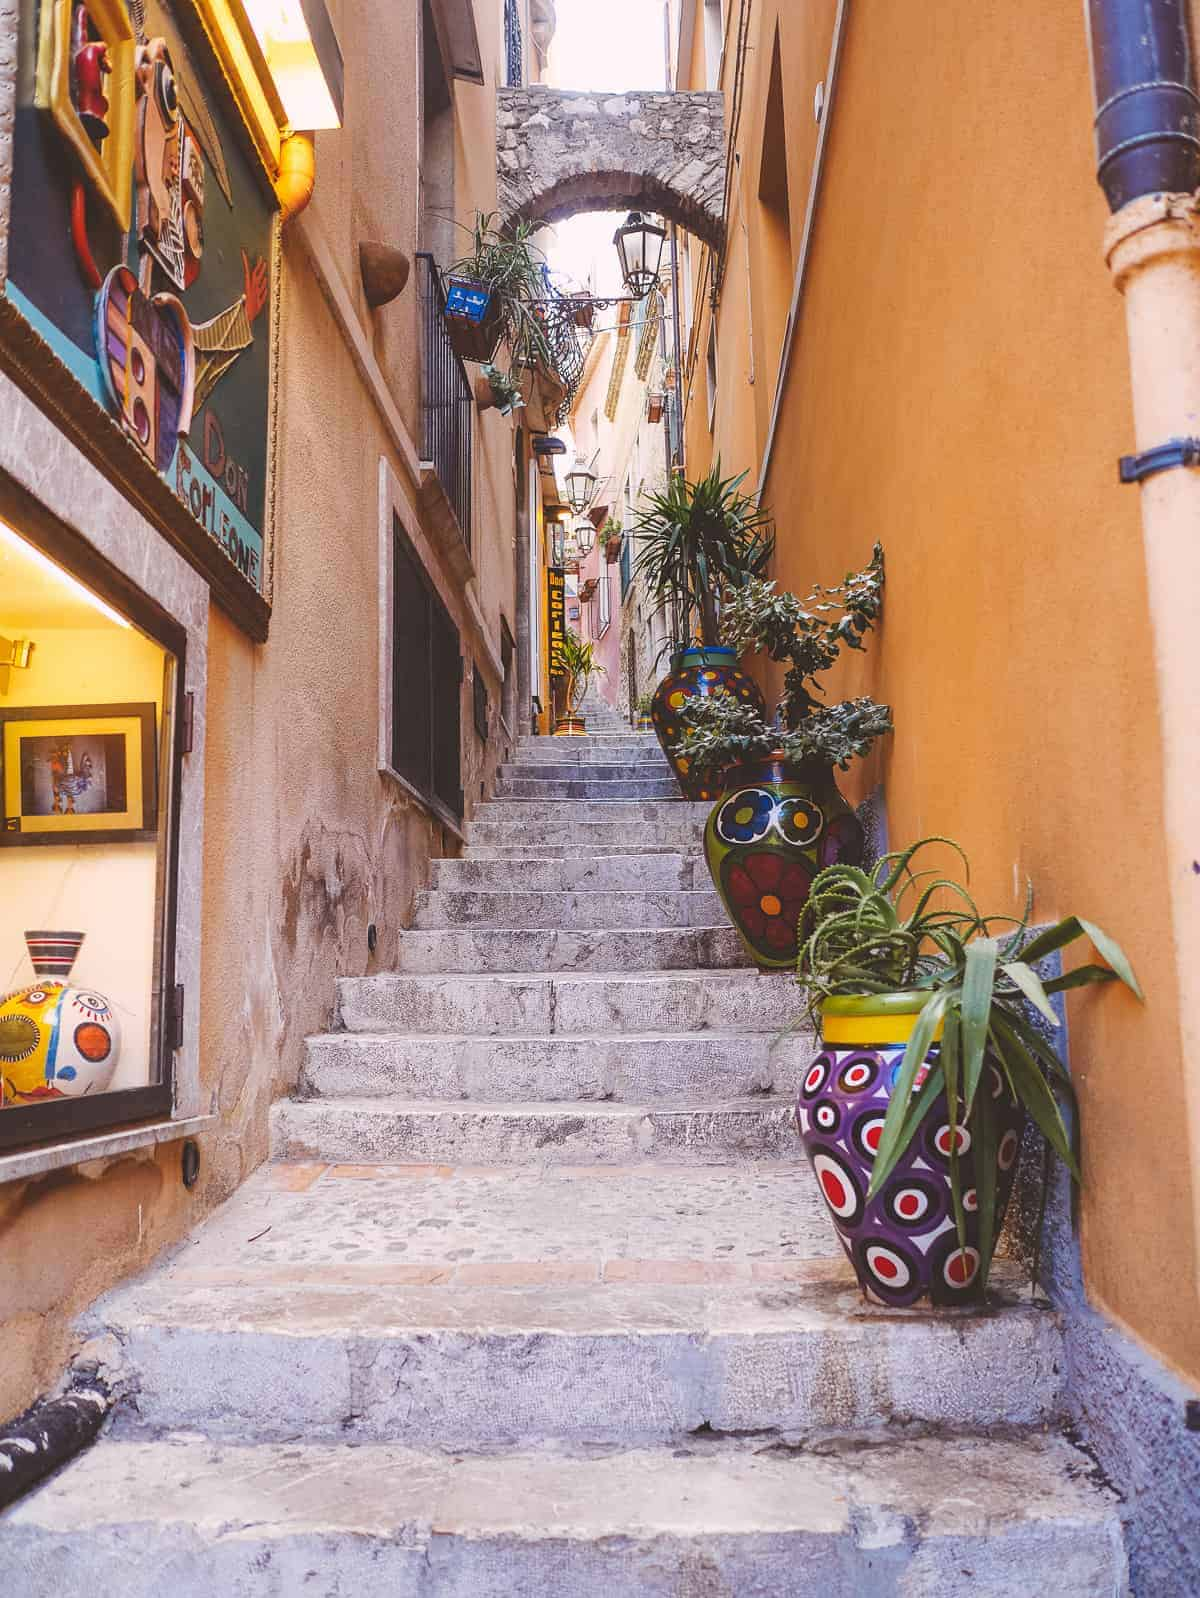 staircase with colourful pots in Italy